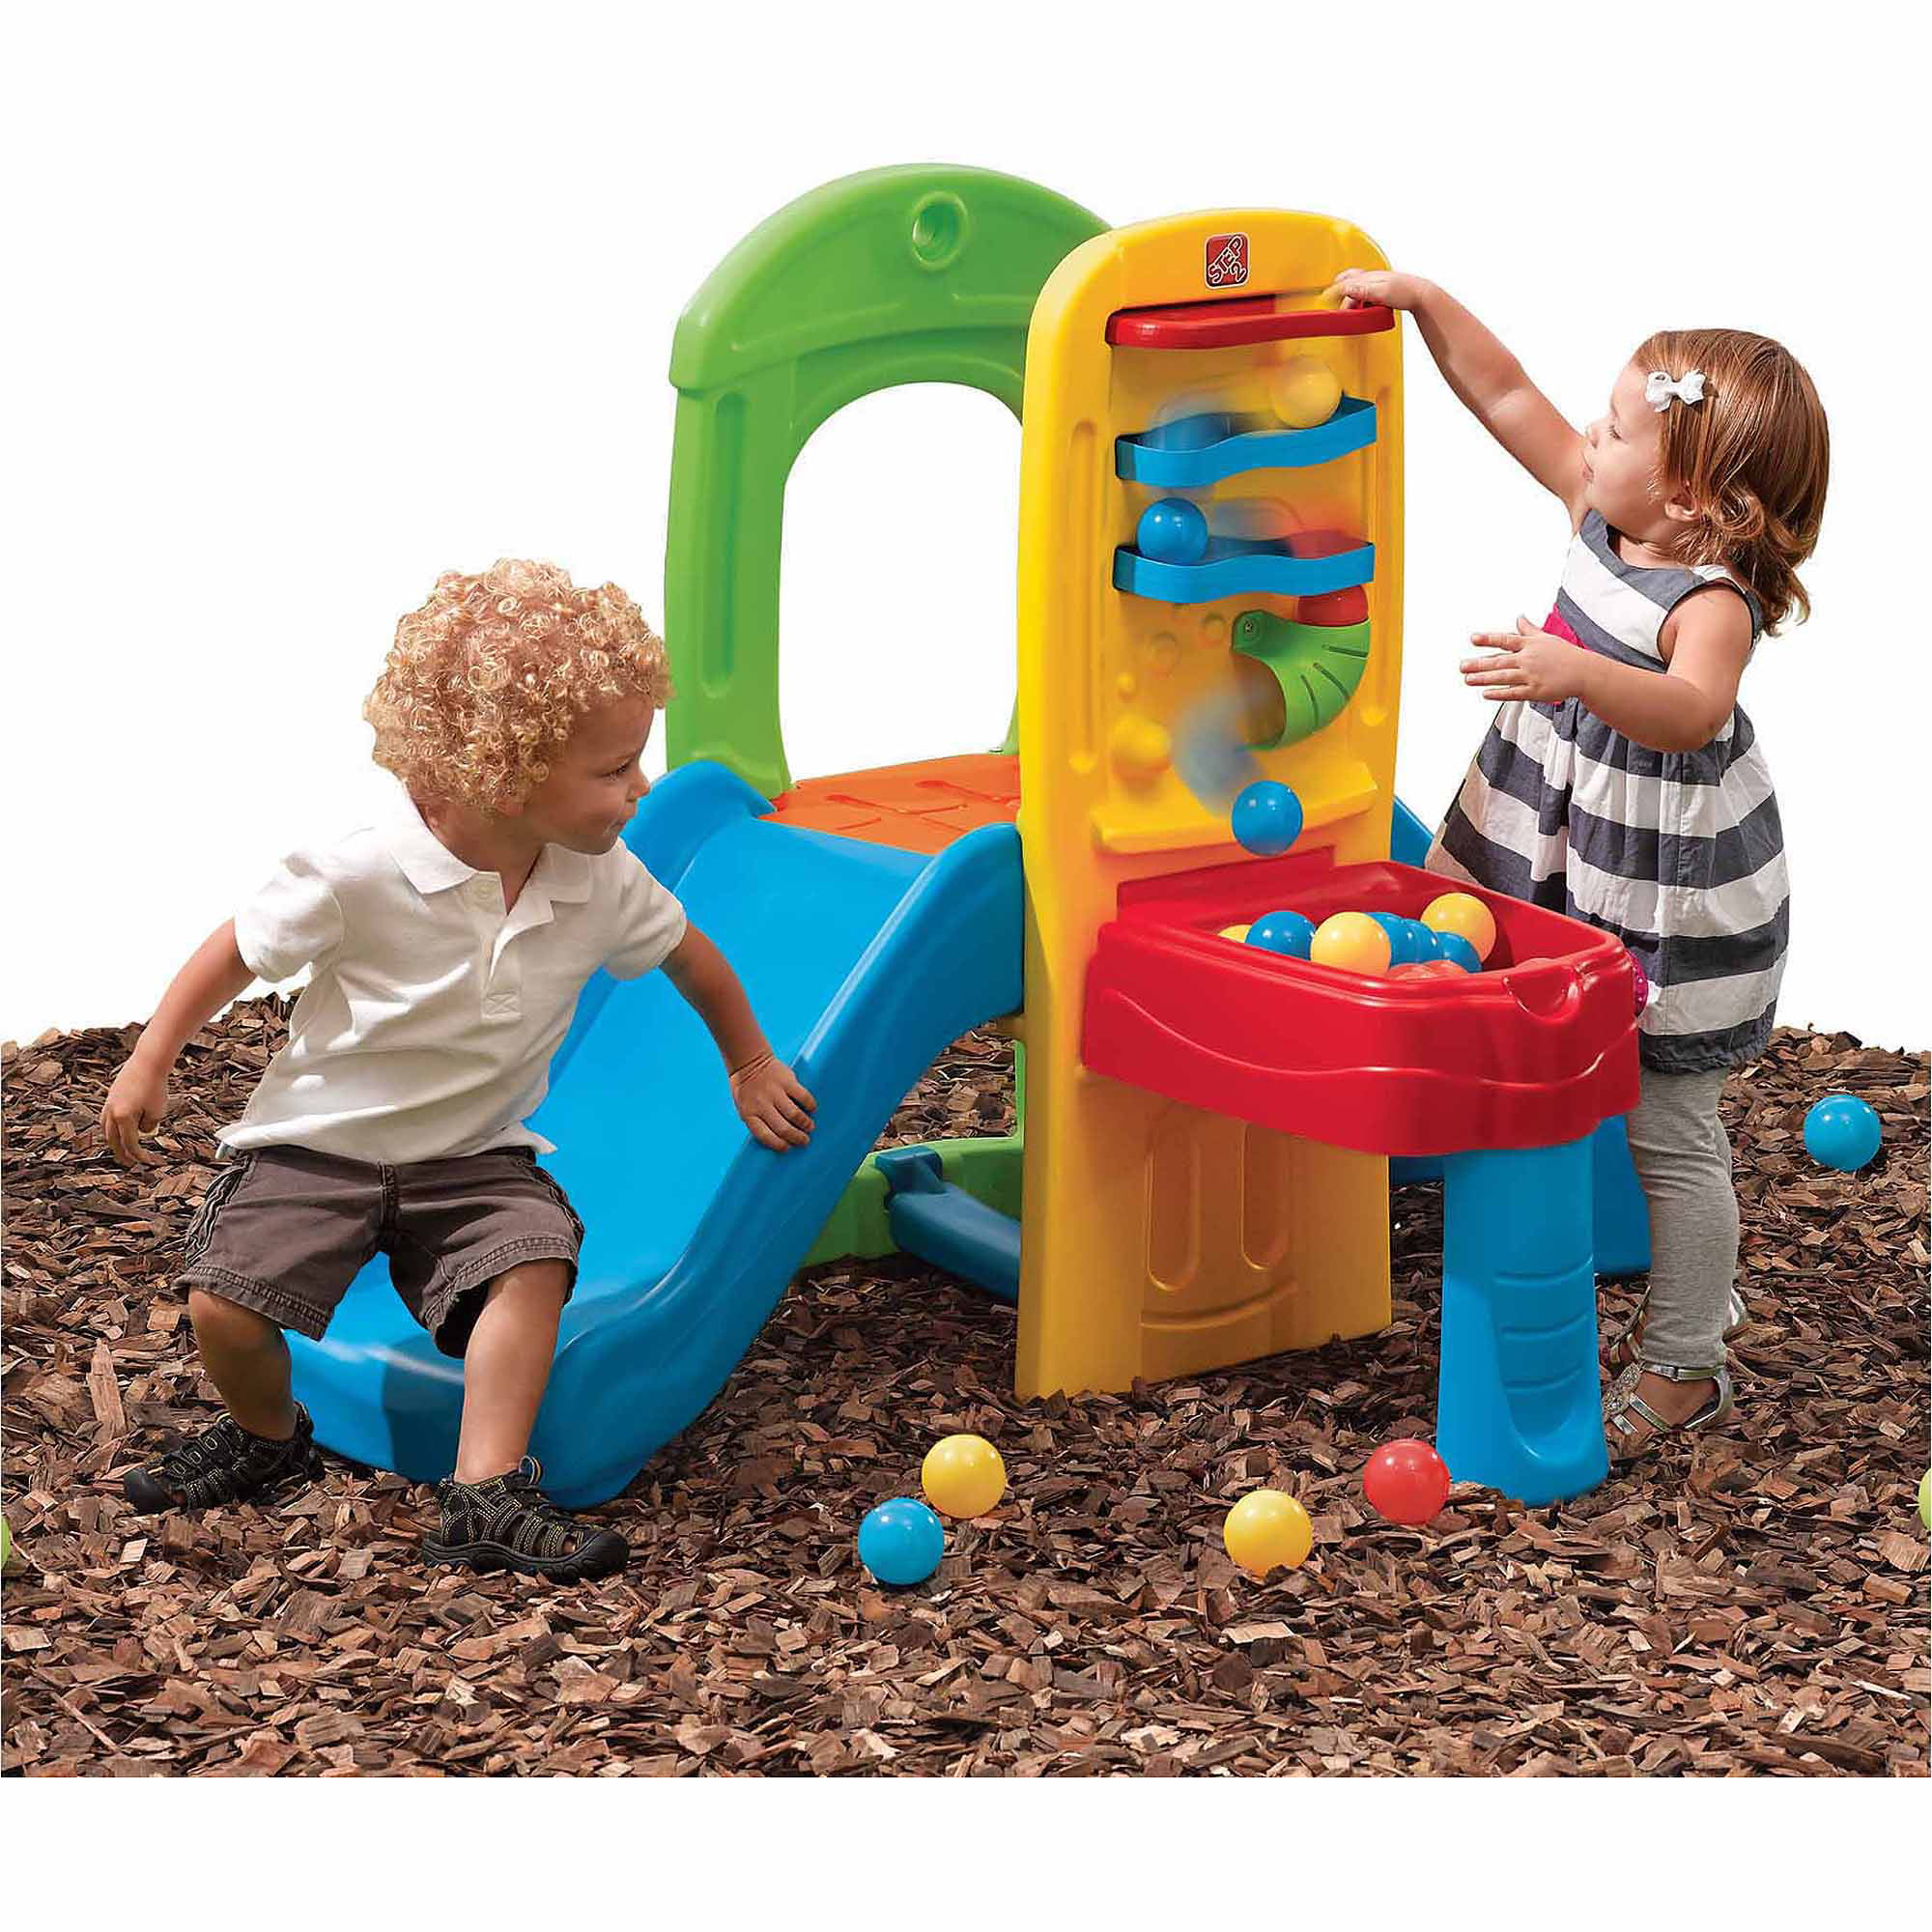 TP Toys Explorer 2 Outdoor Climbing Set Walmart